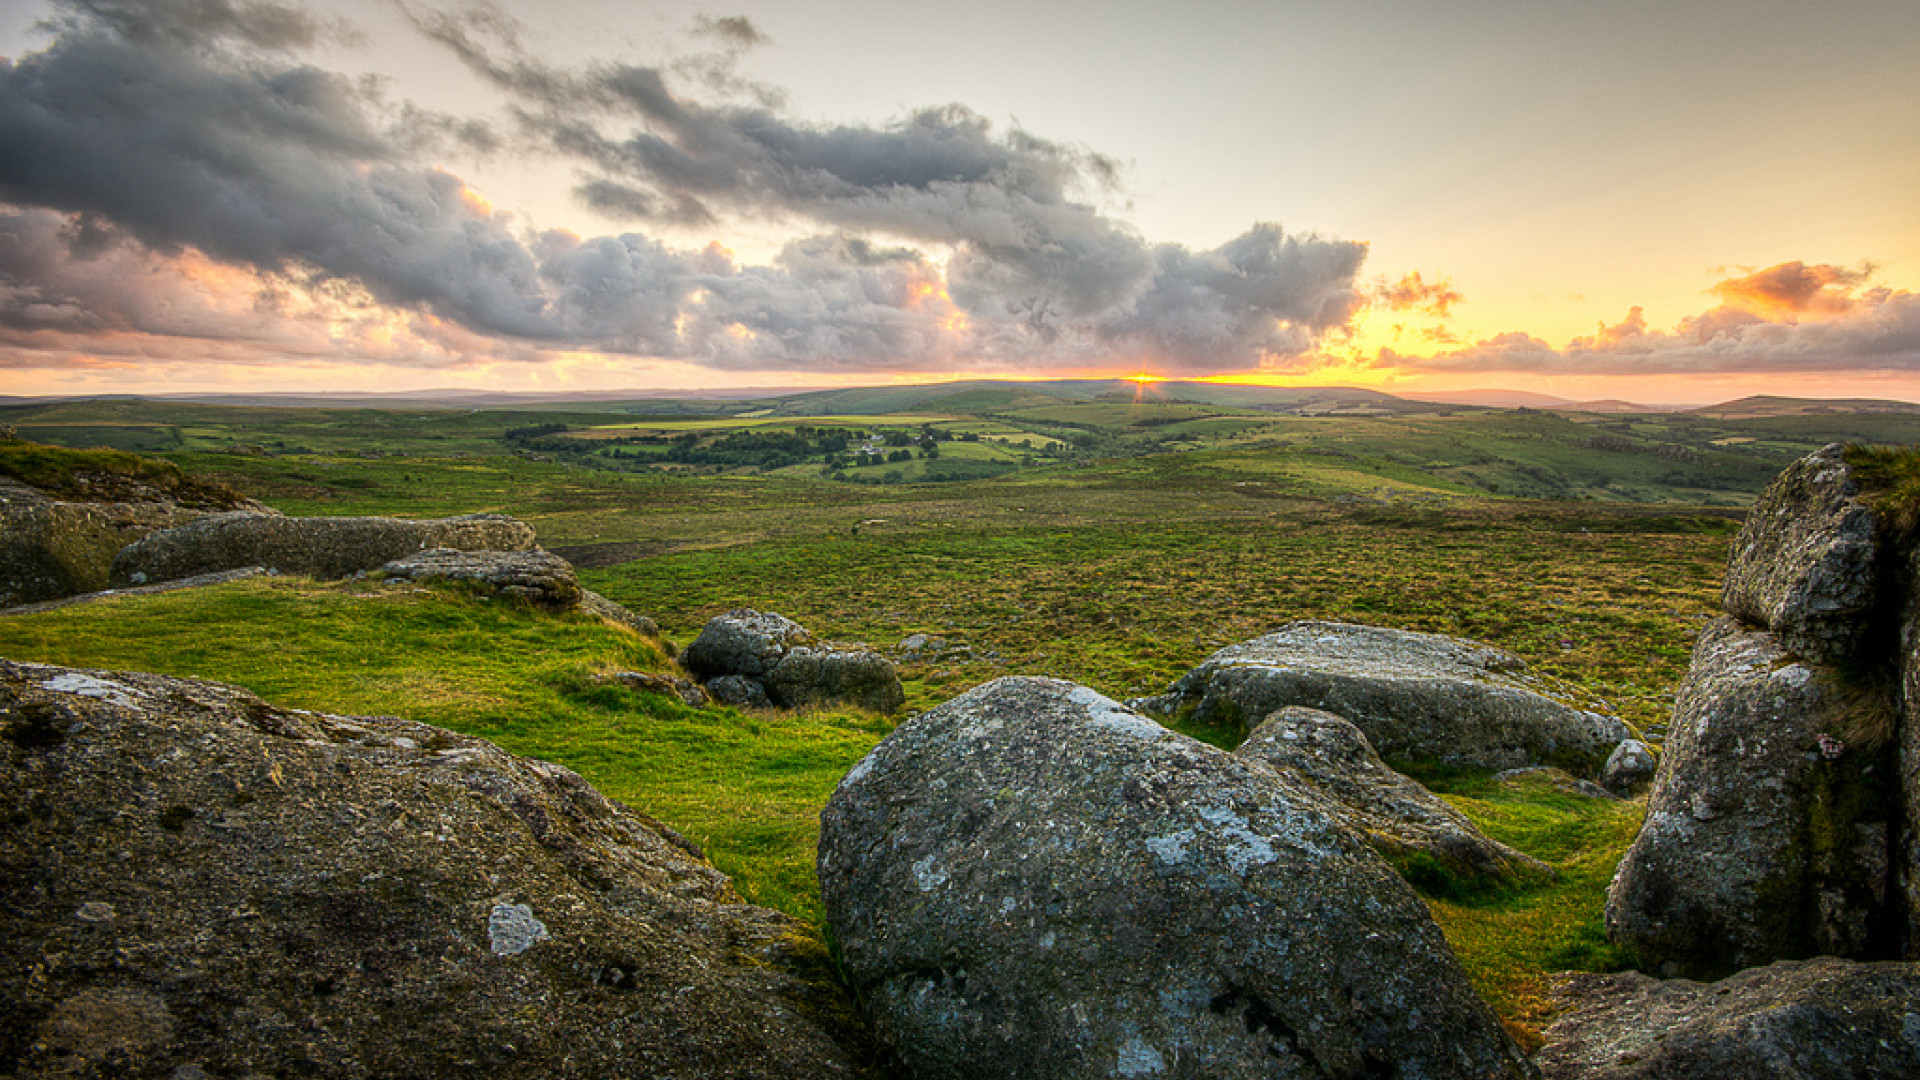 Sunset at Dartmoor, Devon